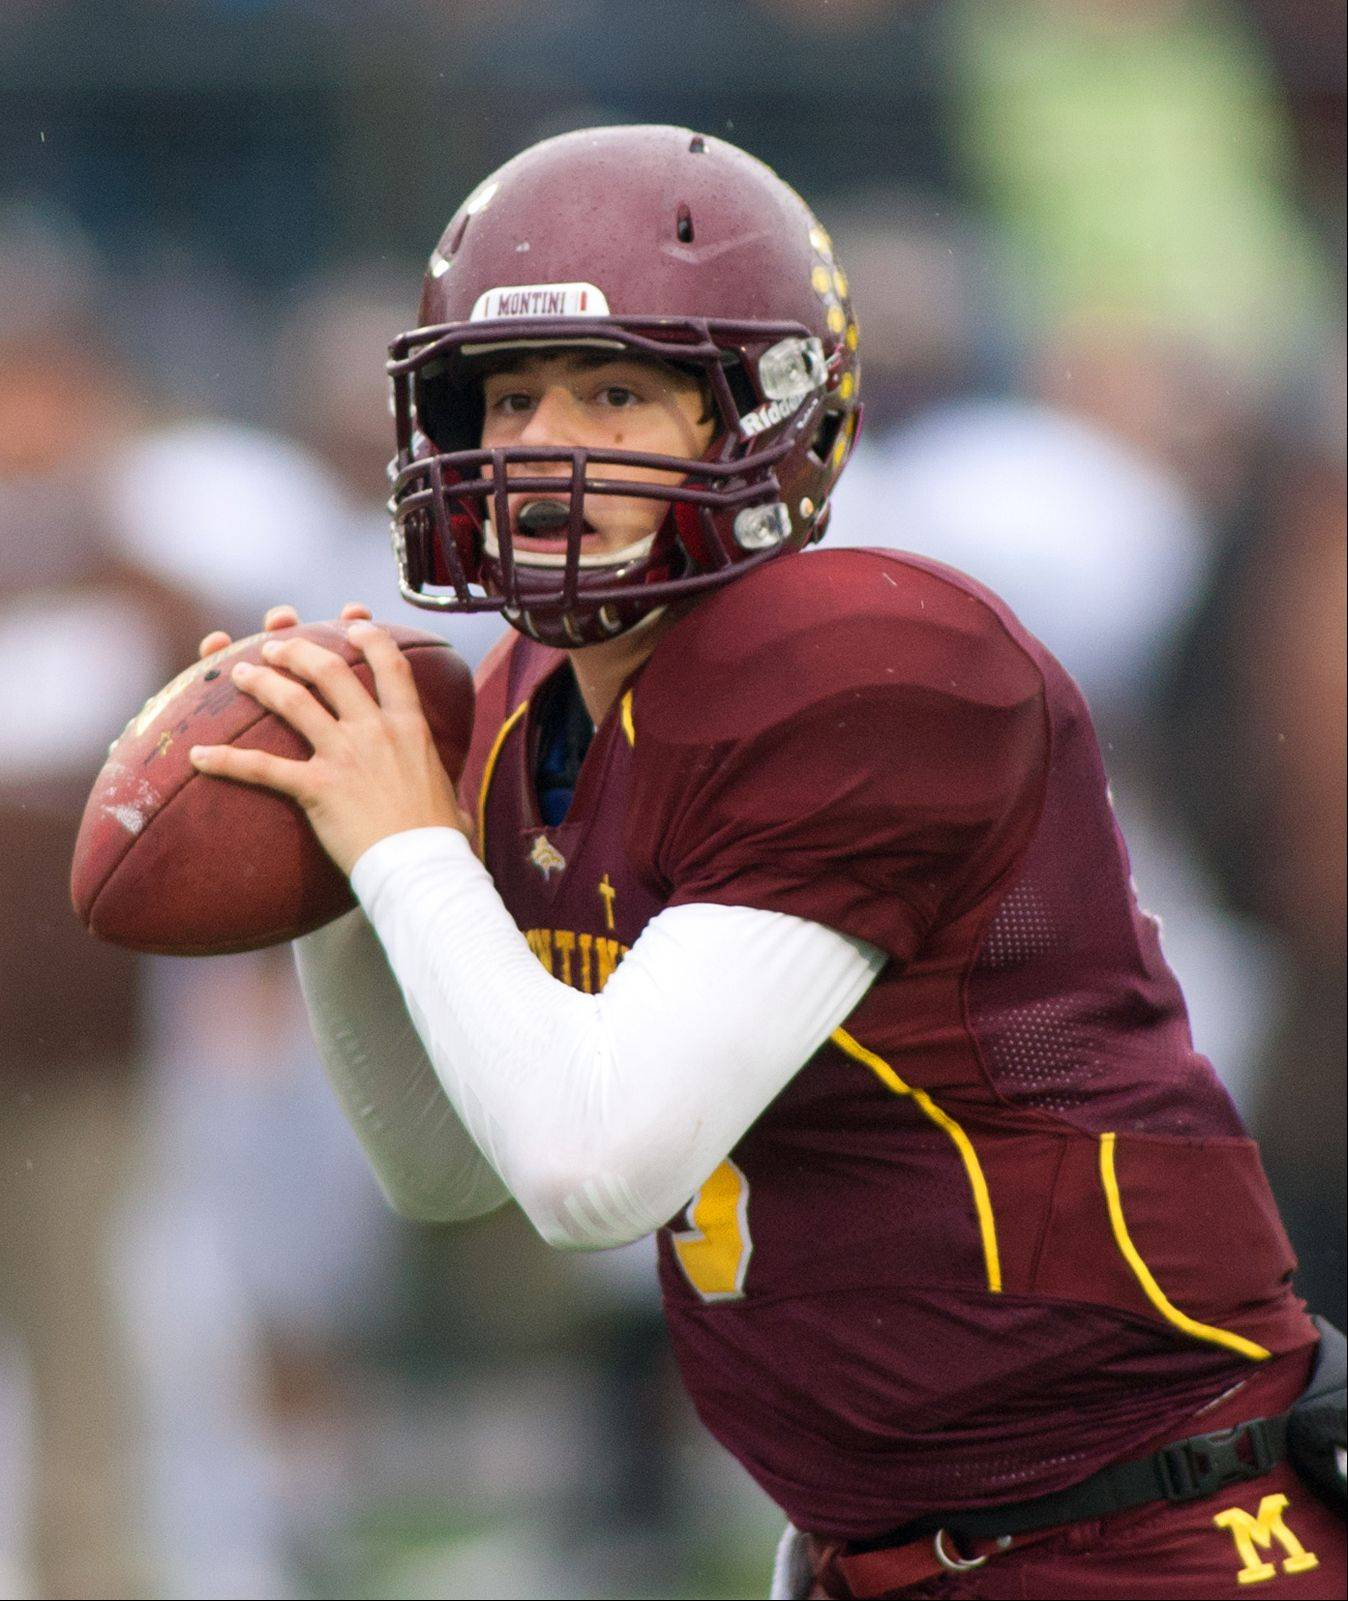 Montini QB Wills finishing strong